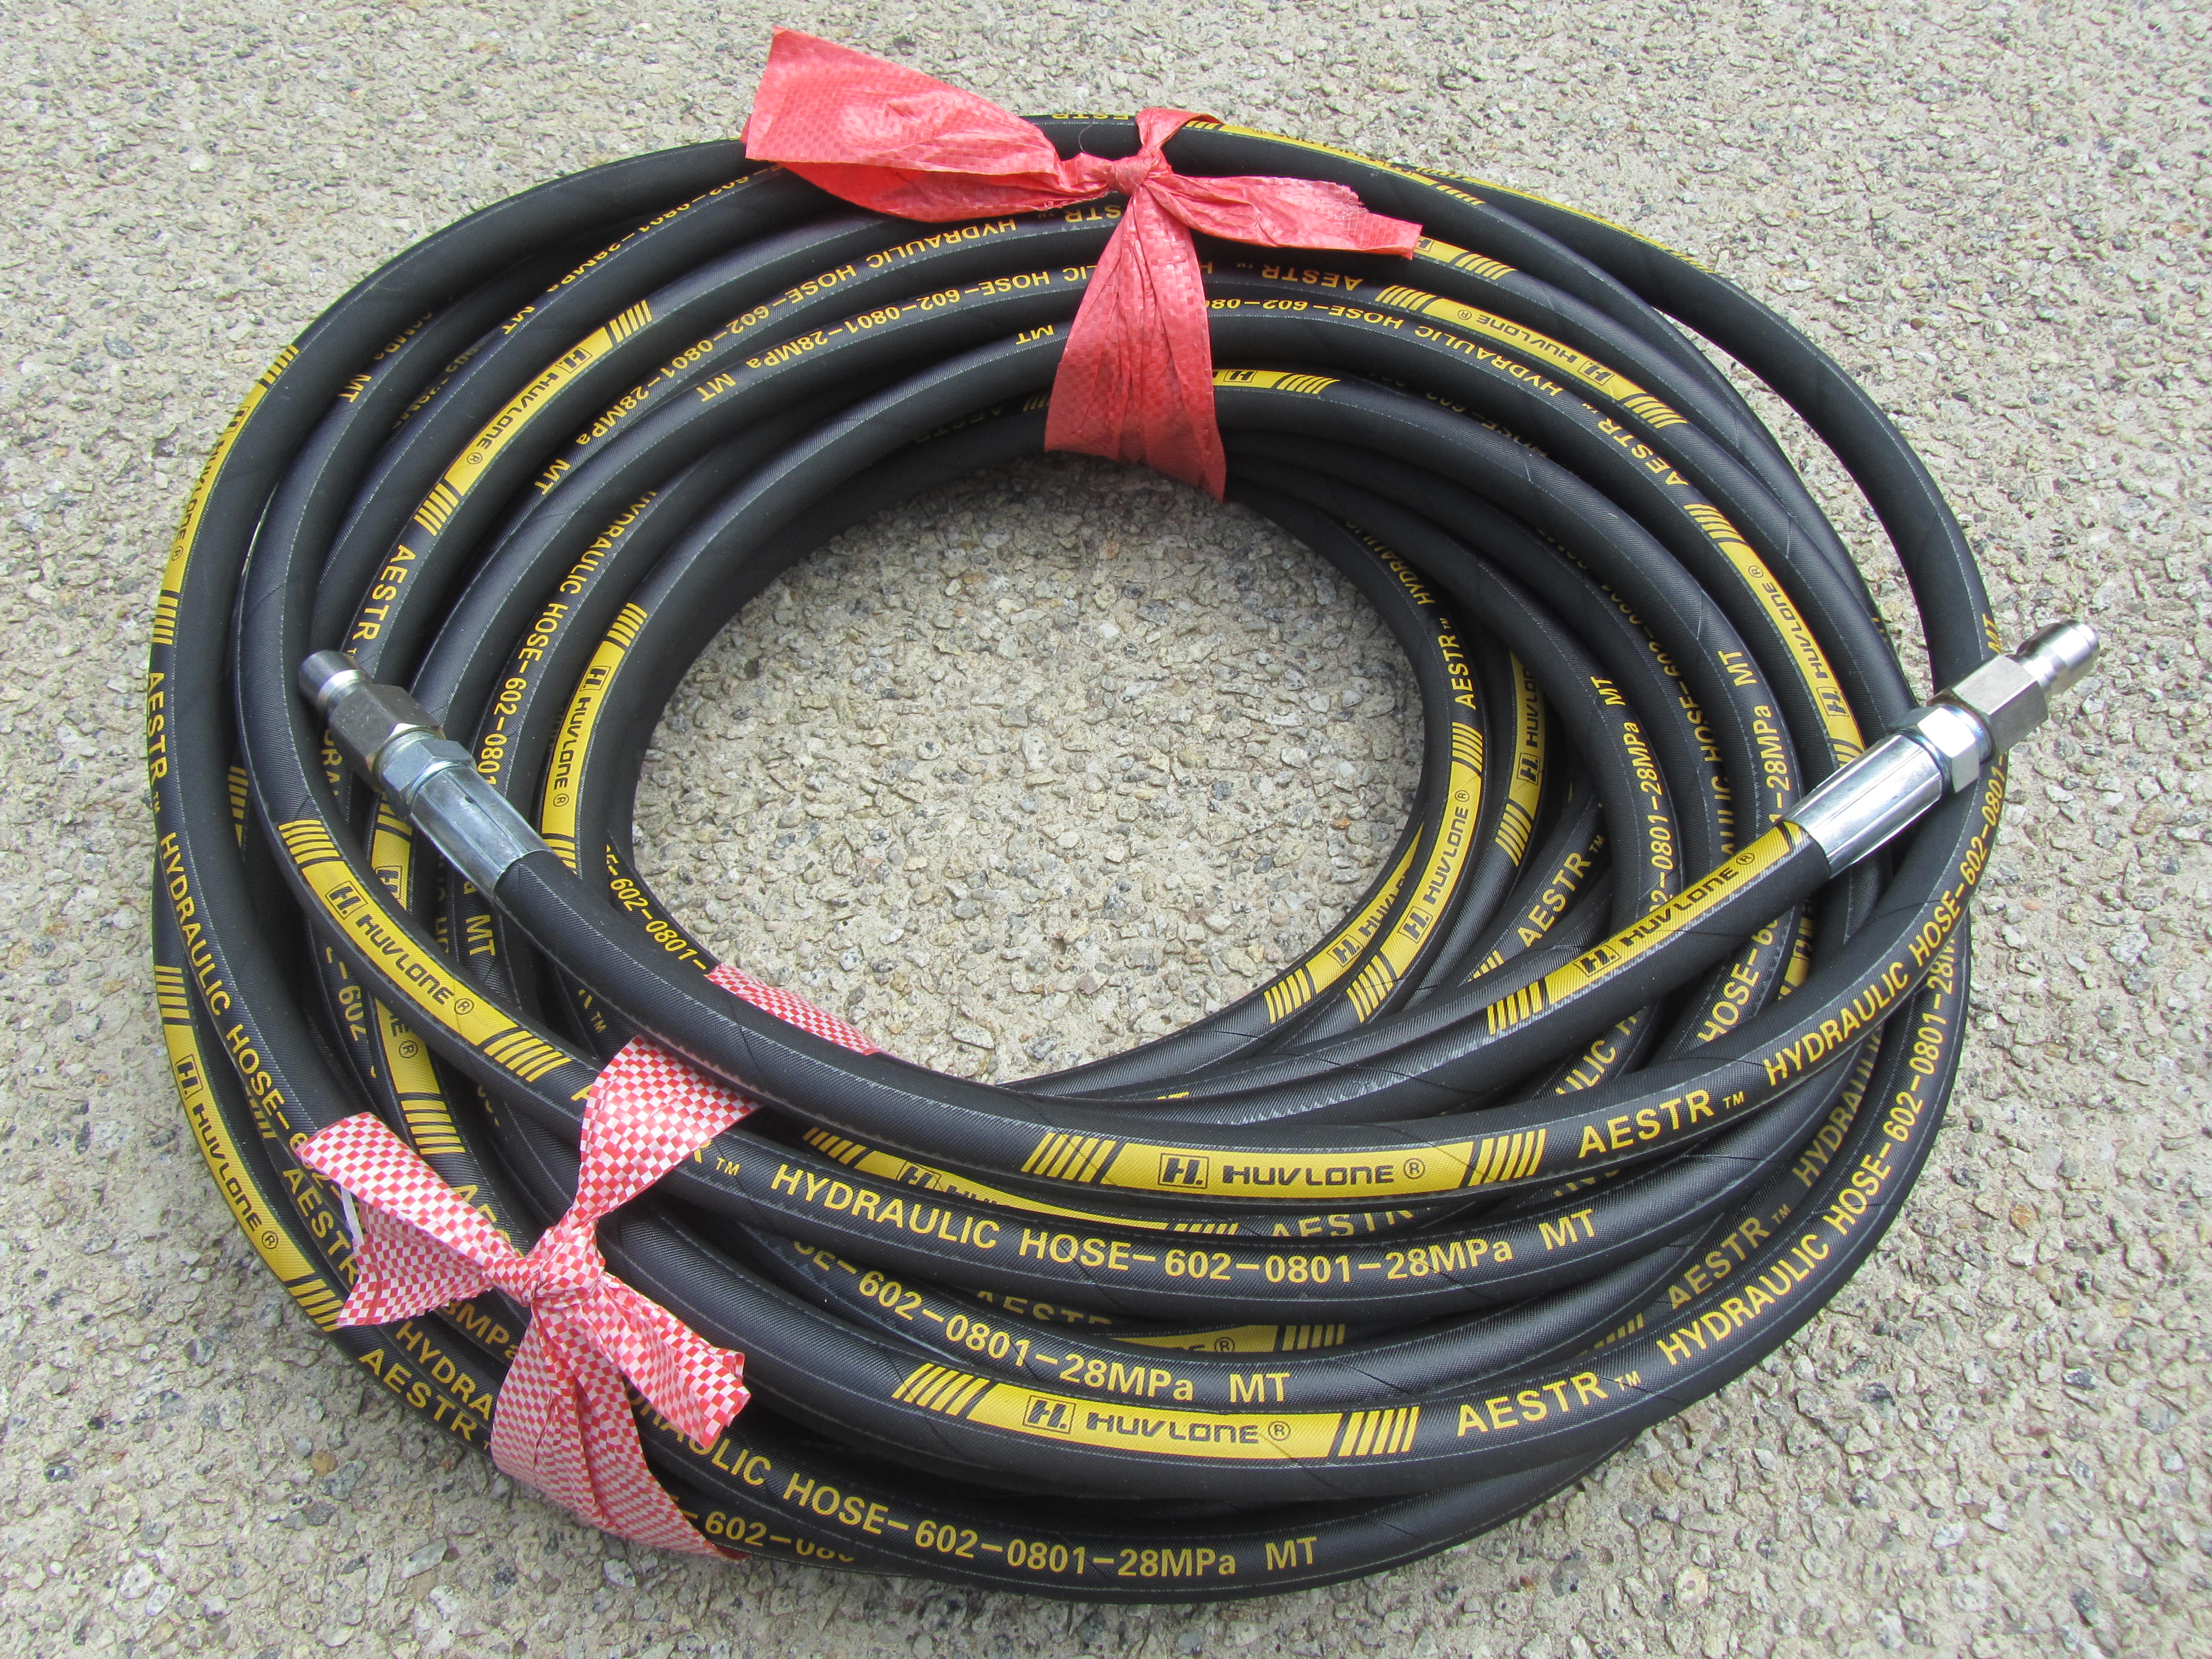 30 Metre Aestr Single Steel Braided High Pressure Hose with Quick Connection Fittings SUIT KARCHER QUICK CONNECT